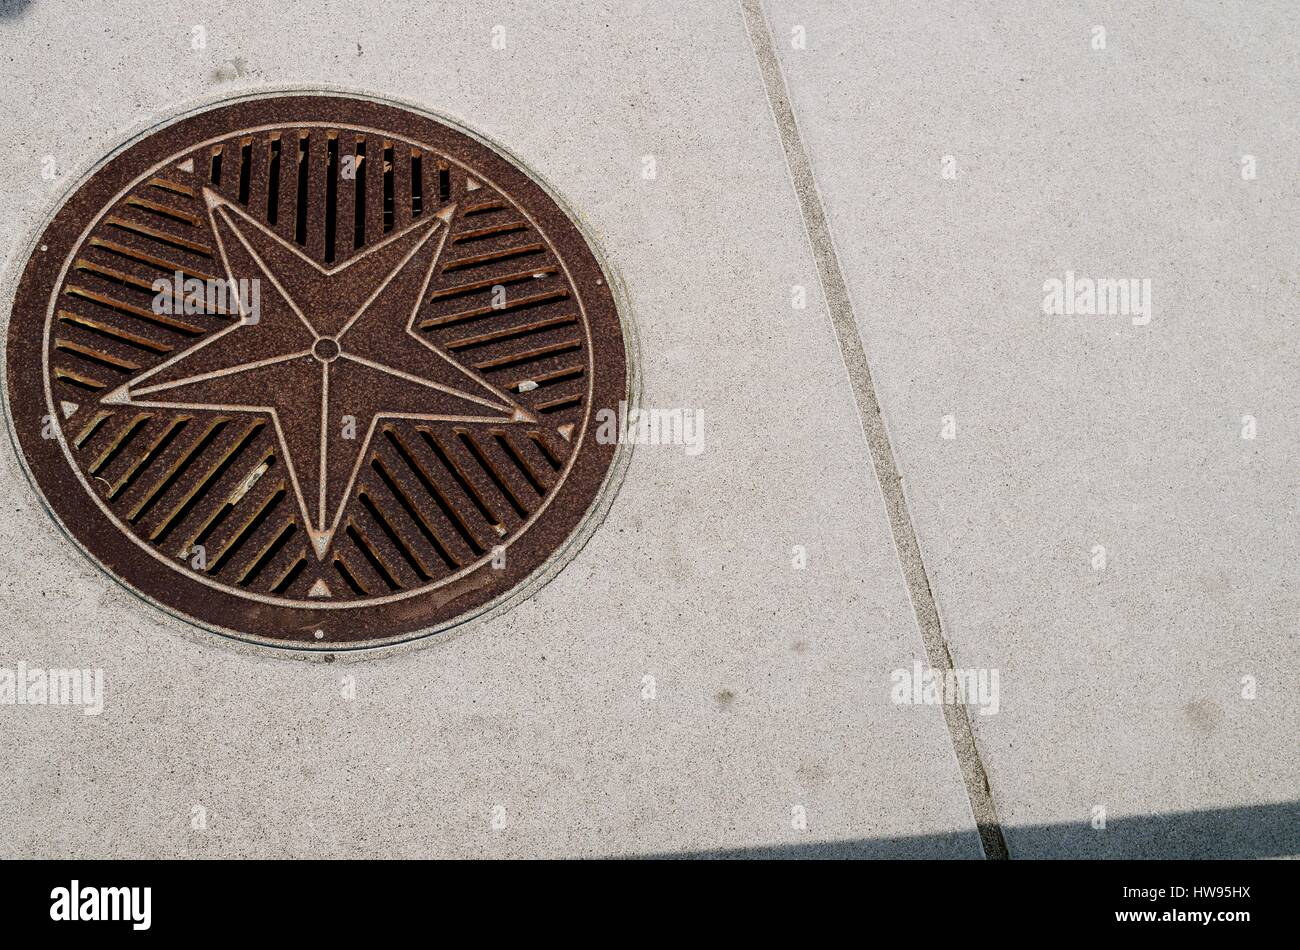 Attractive man hole cover decorated with a star. - Stock Image